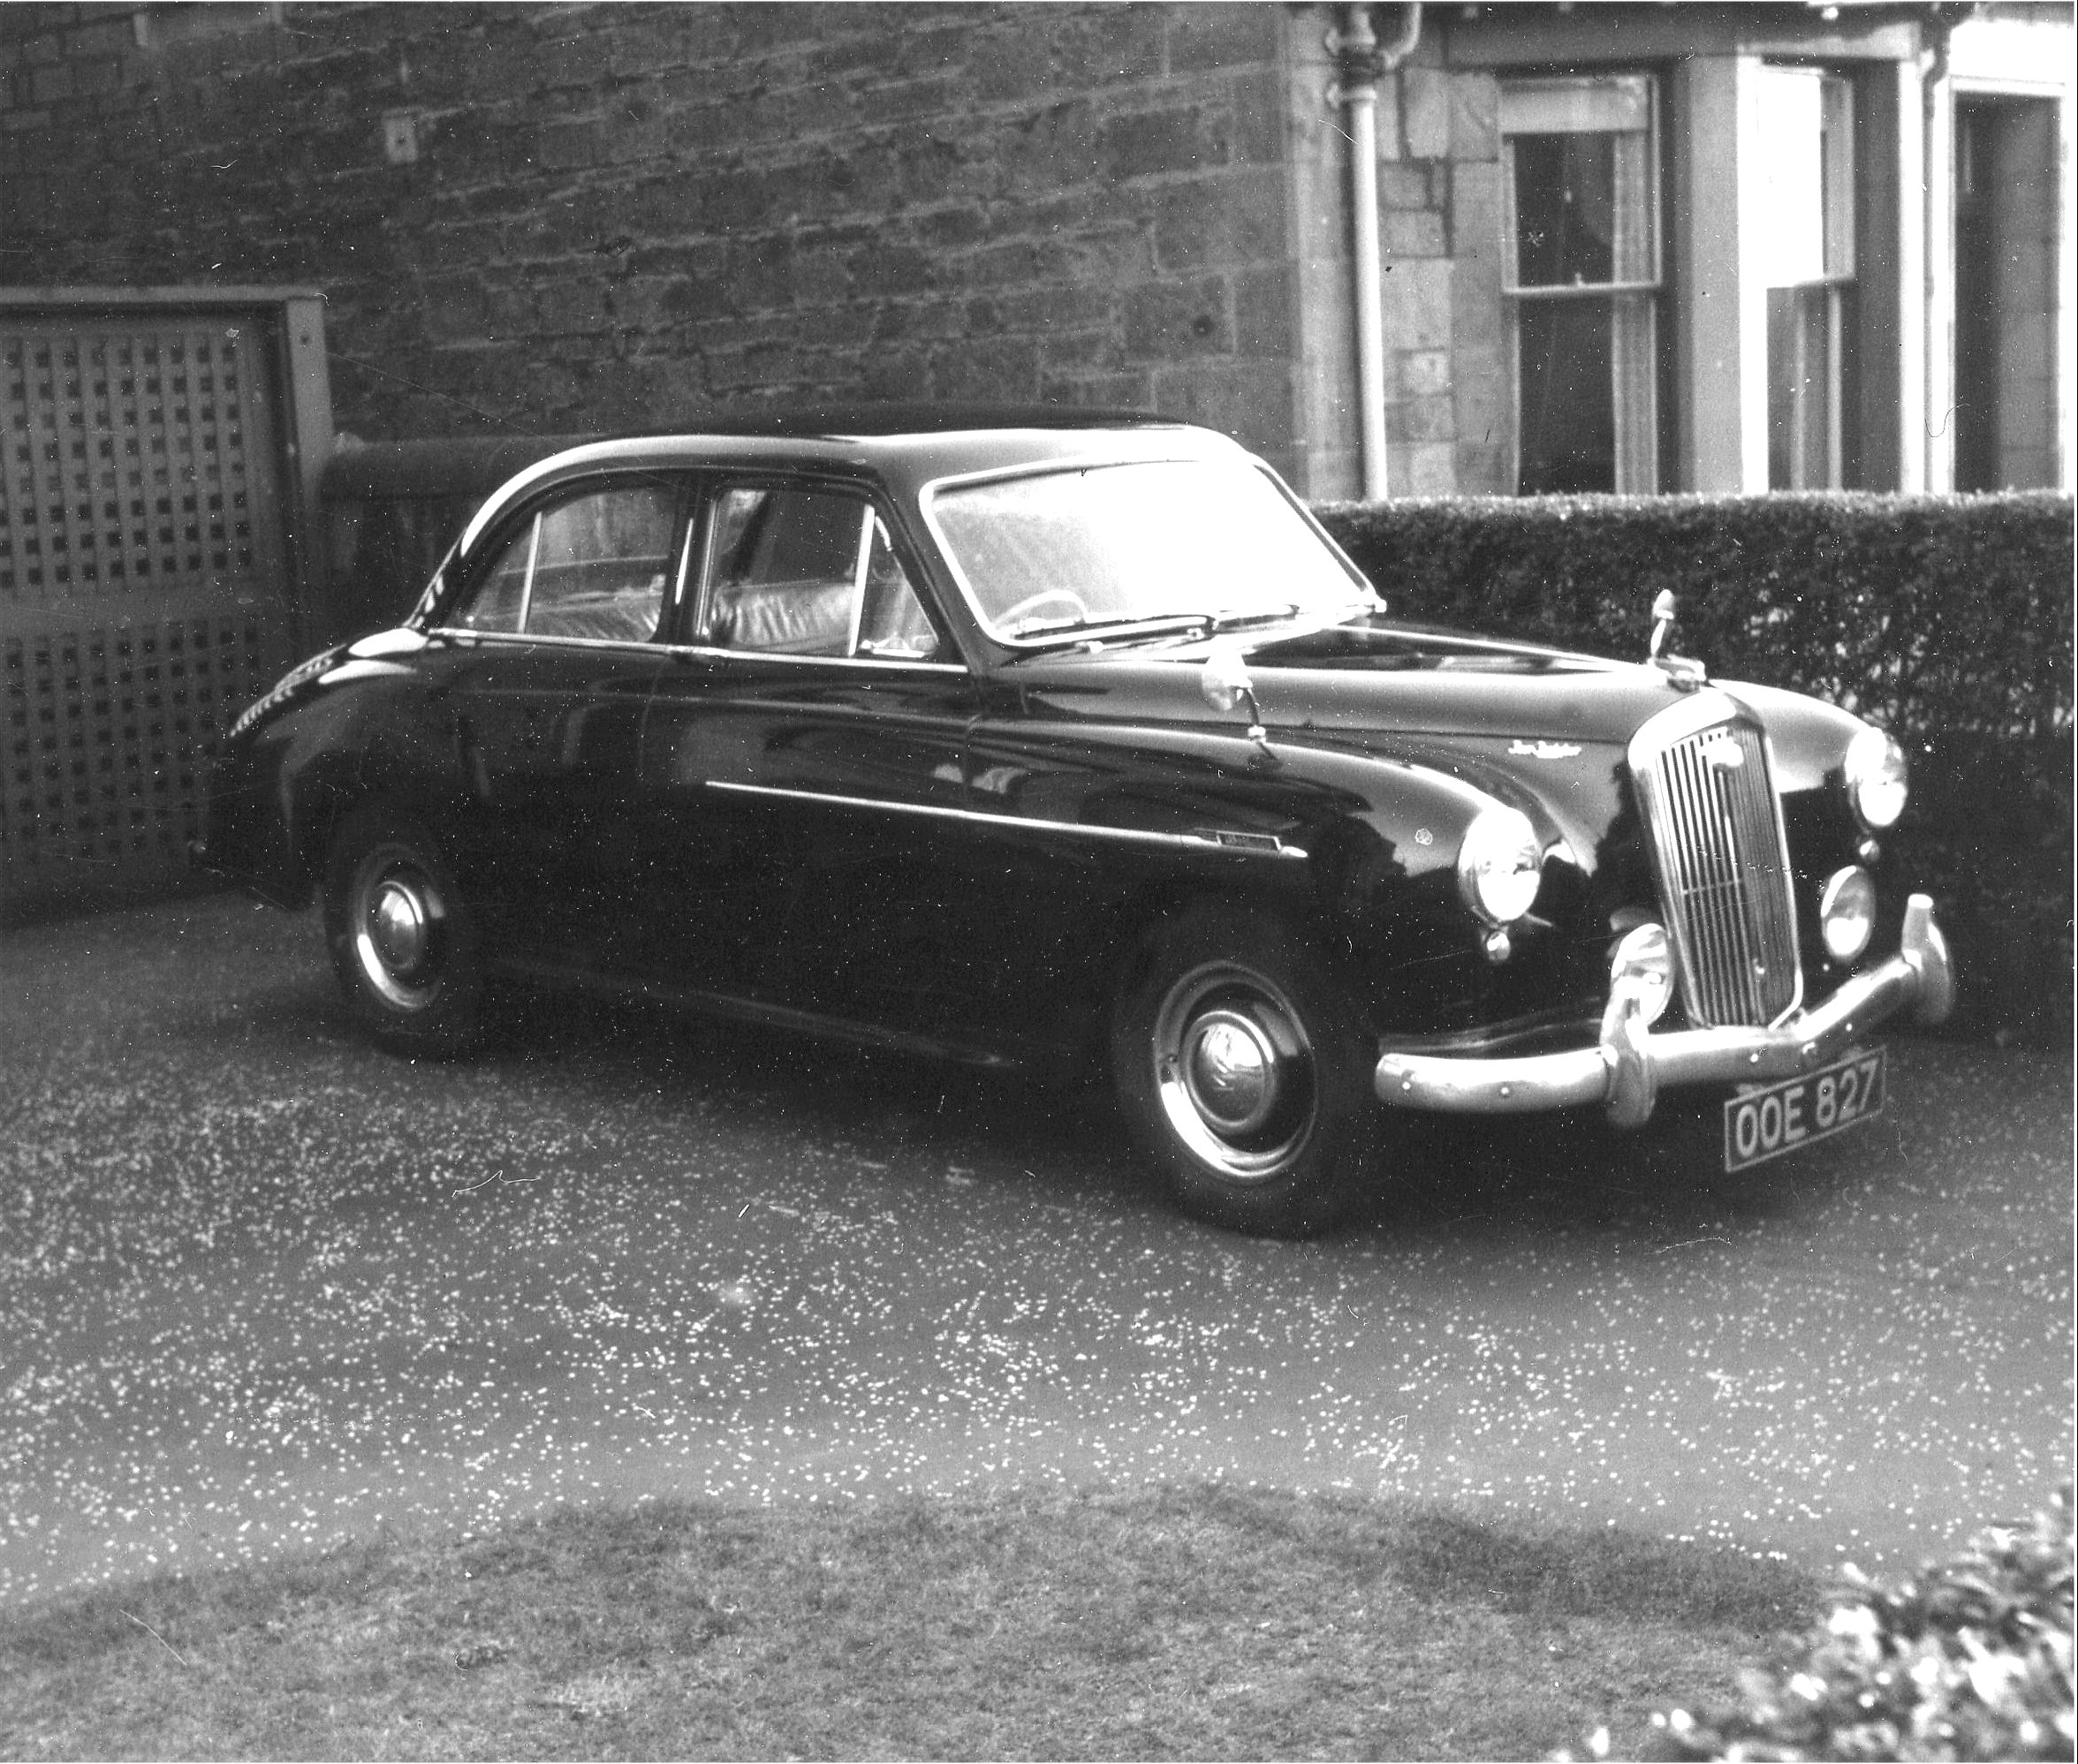 My 4/44. Not quite the MG Magnette I craved.